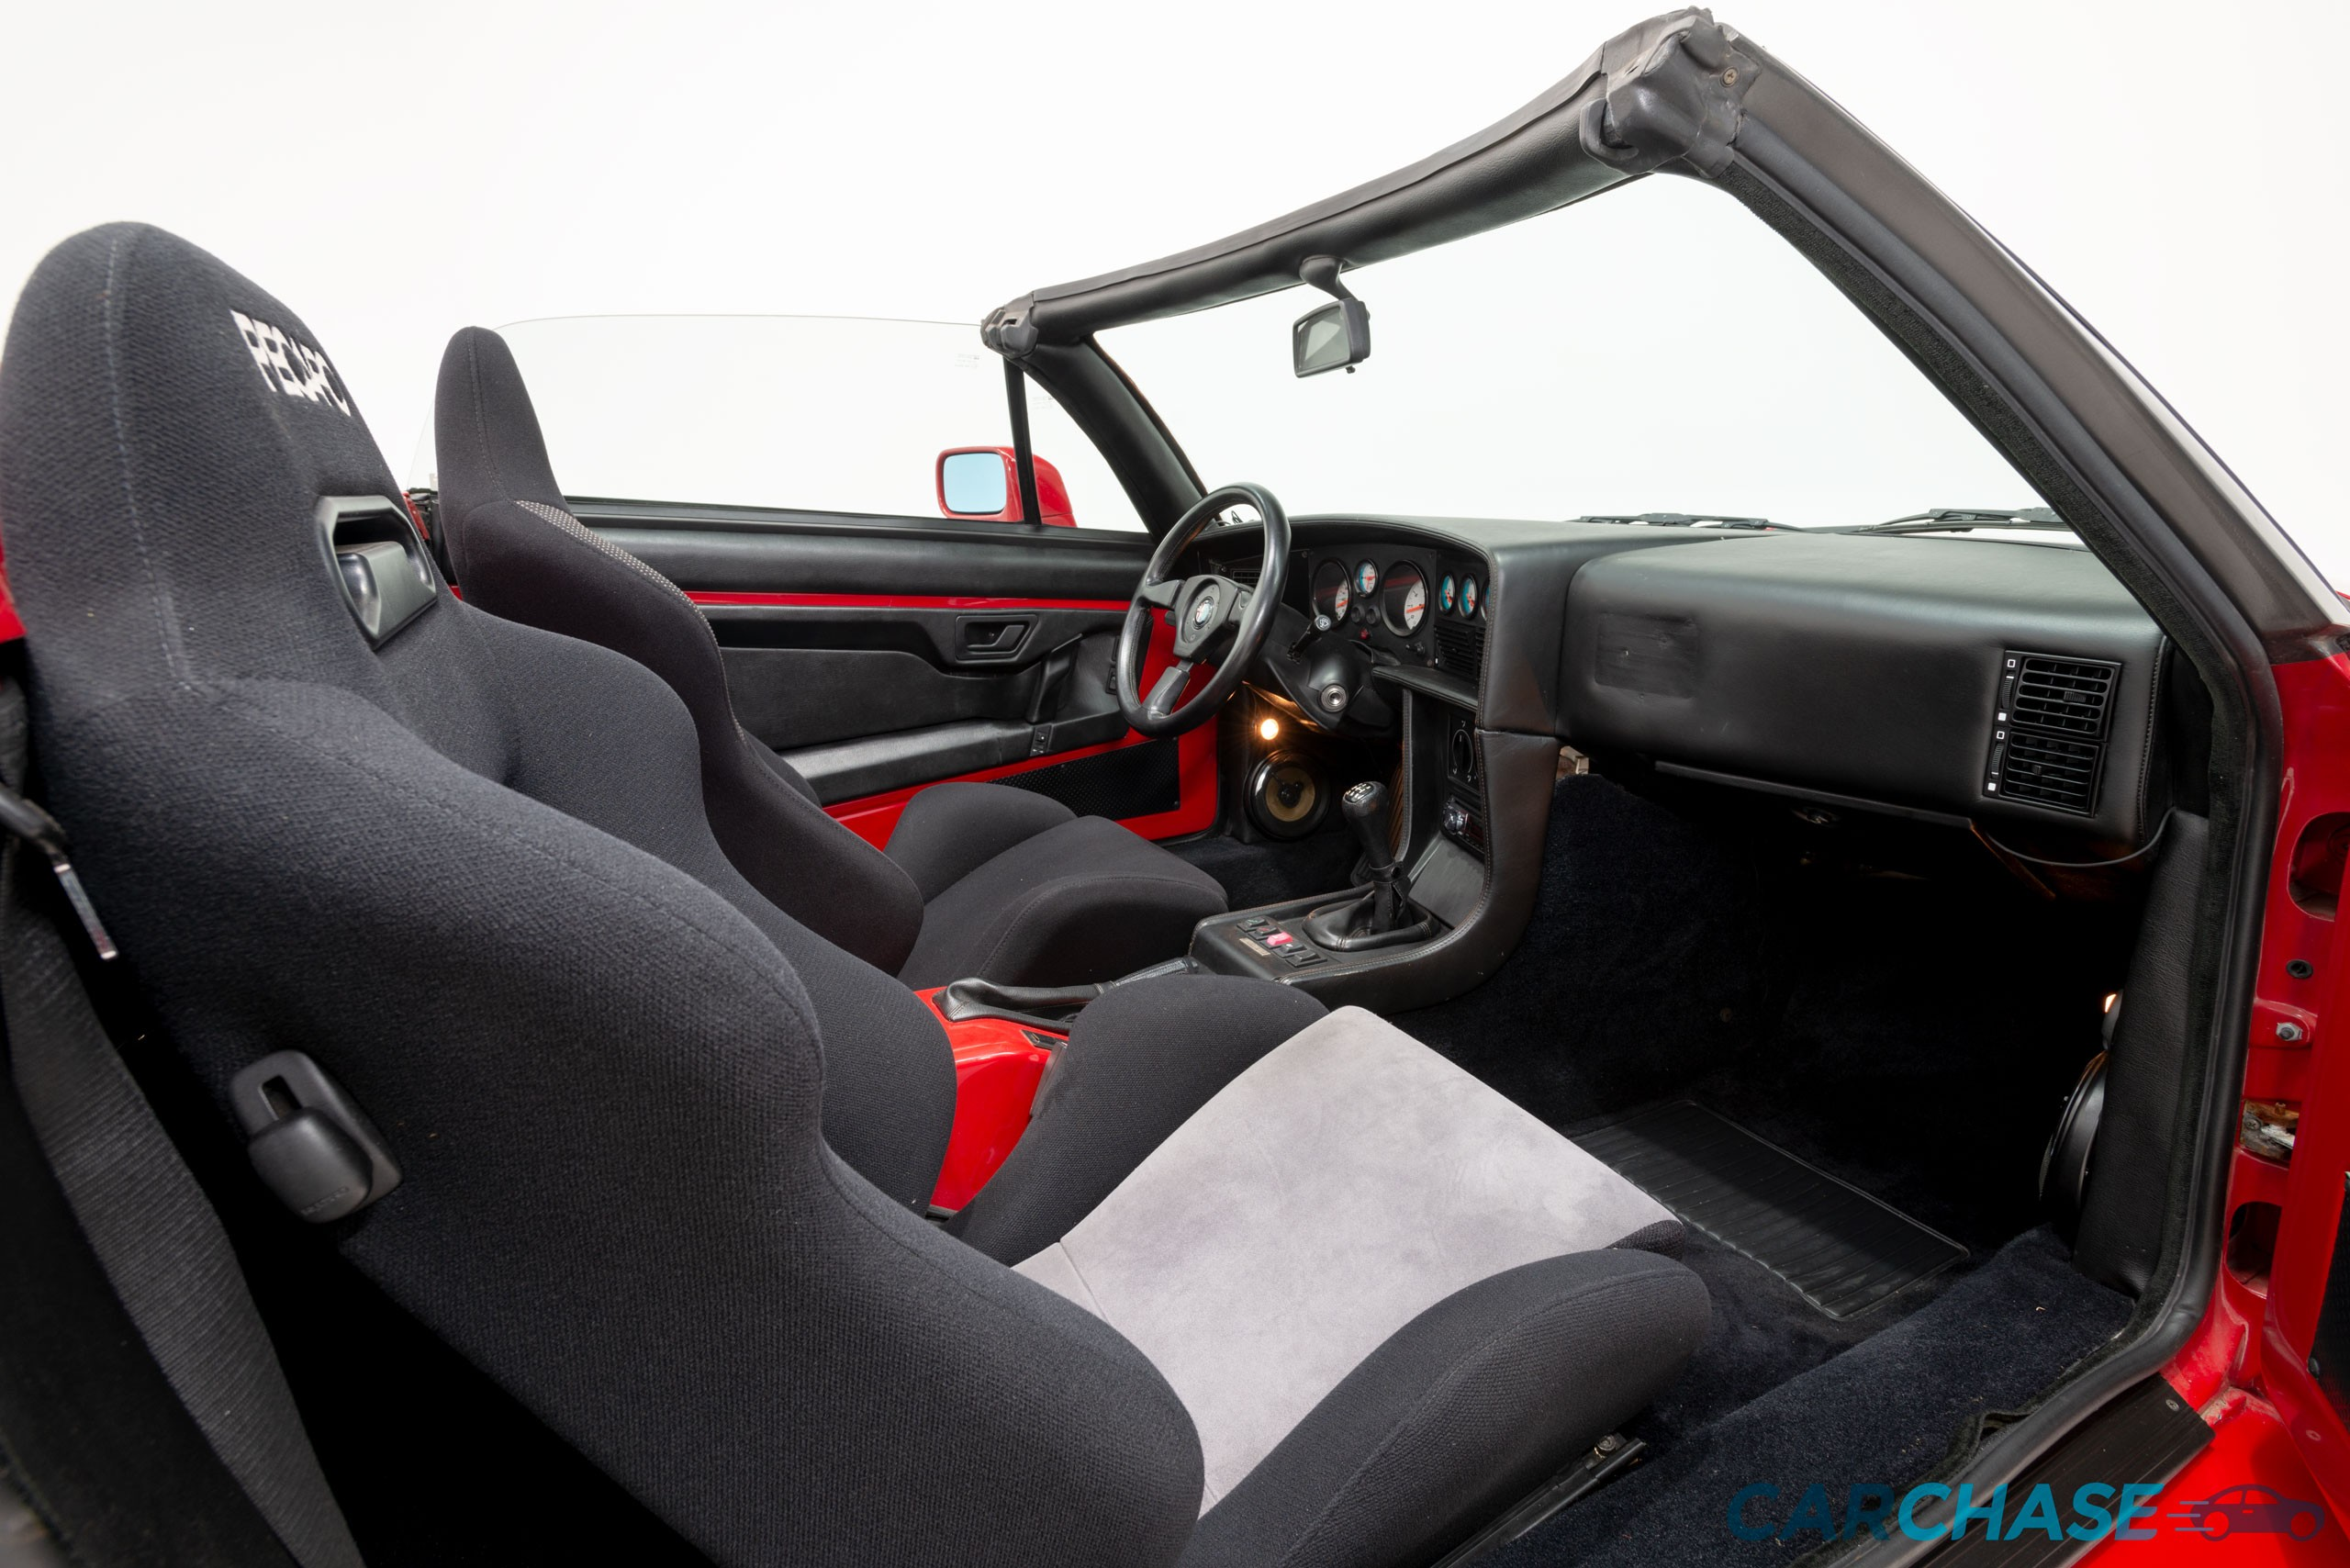 Image of passenger profile of 1993 Alfa Romeo Zagato RZ